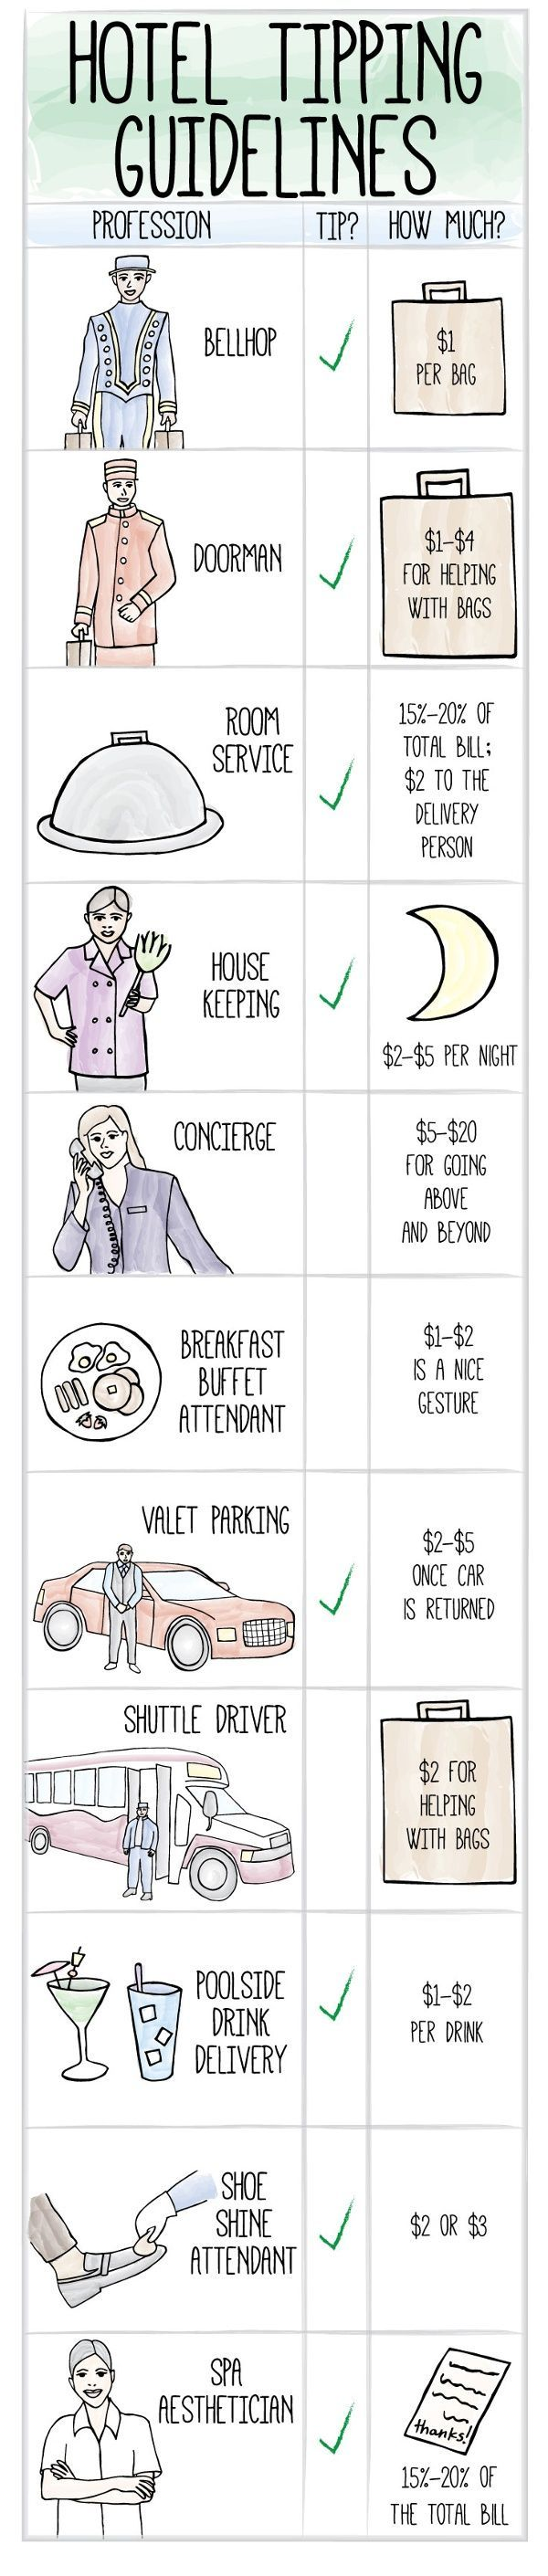 Everything You Need to Know About Tipping at Hotels